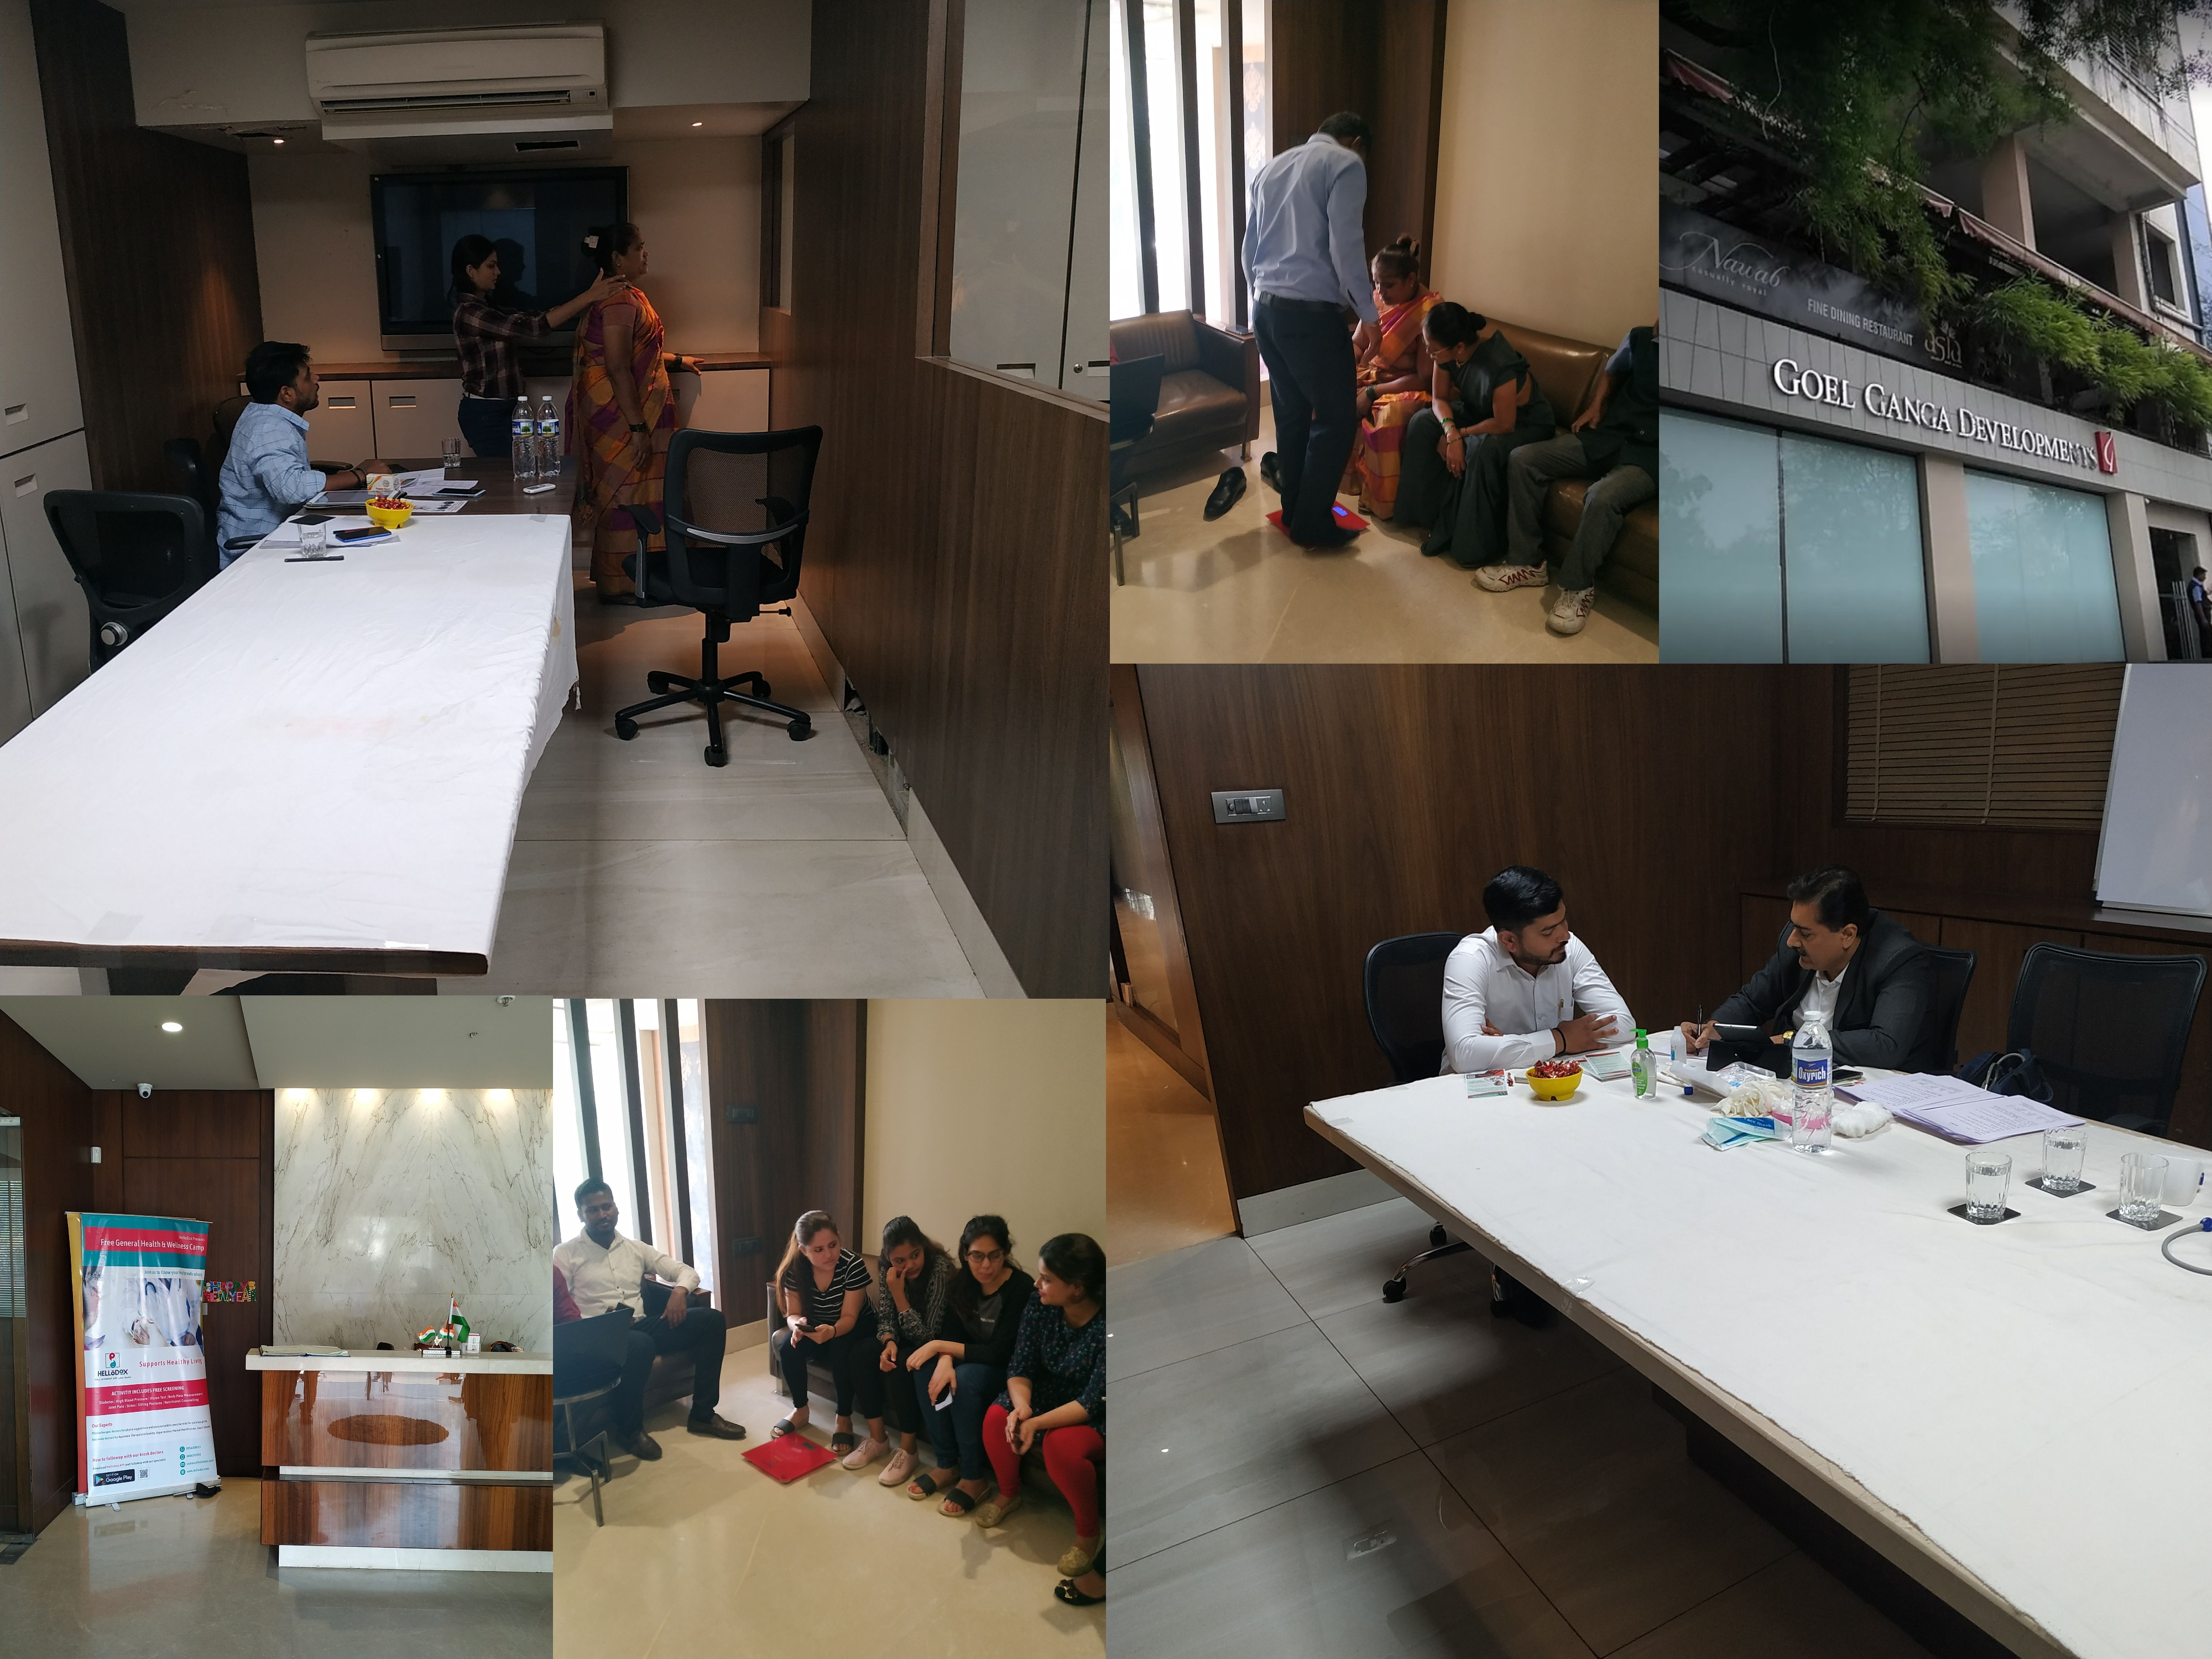 HelloDox Conducted Health Camp At Goel Ganga Developments - To Bring Awareness Among The Employees About Preventive Healthcare and Health Checkups